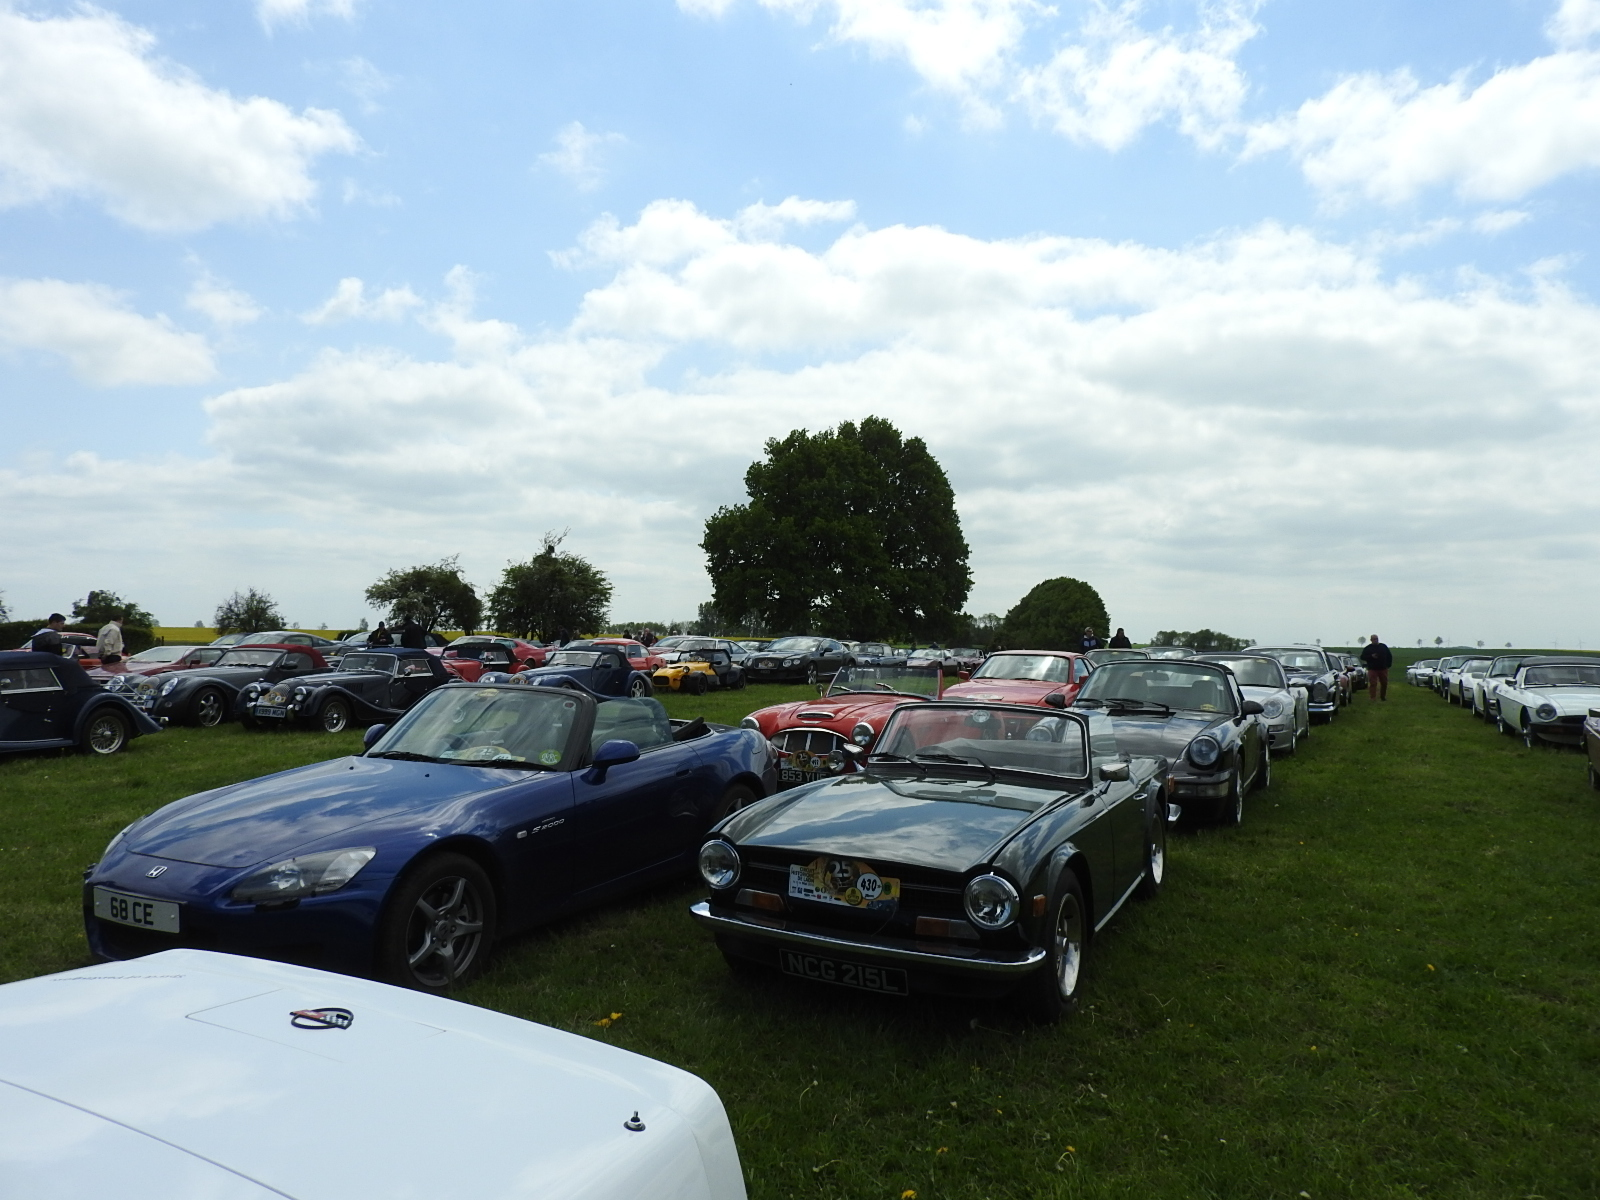 Over 450 cars in total